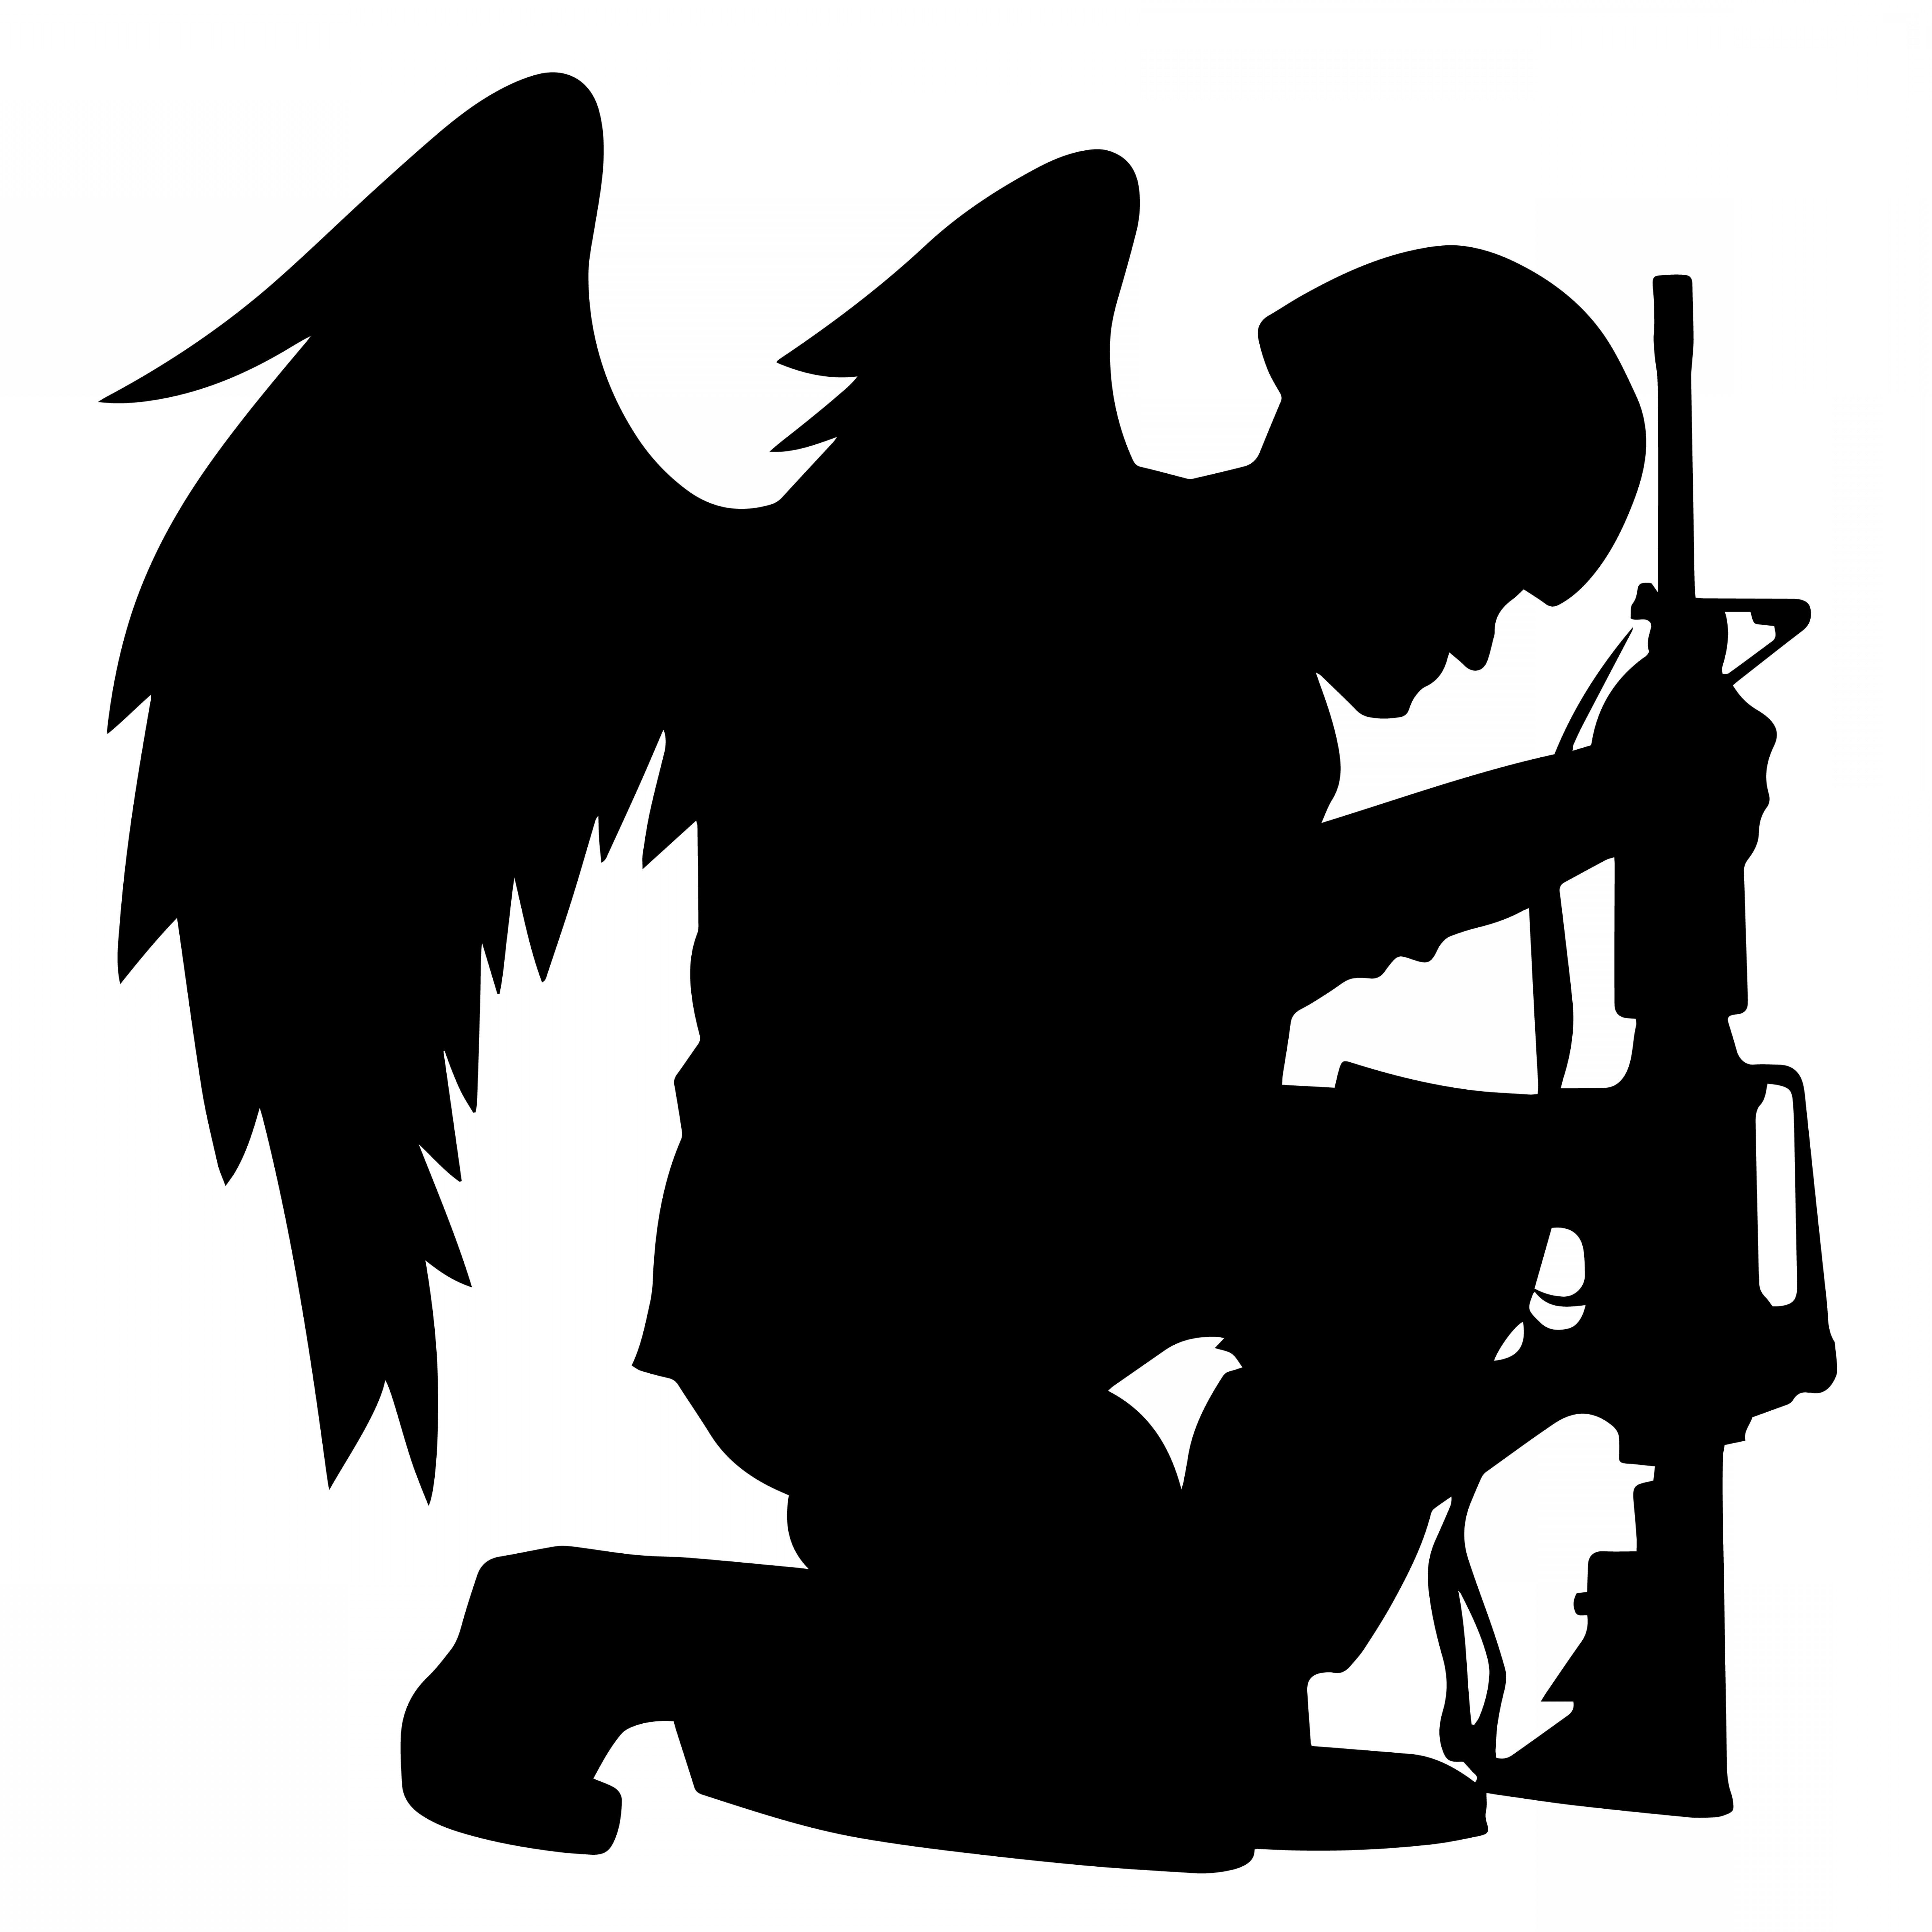 Military soldier kneeling with wings black and white clipart free download Military Angel Soldier With Wings Kneeling Silhouette Vector ... free download